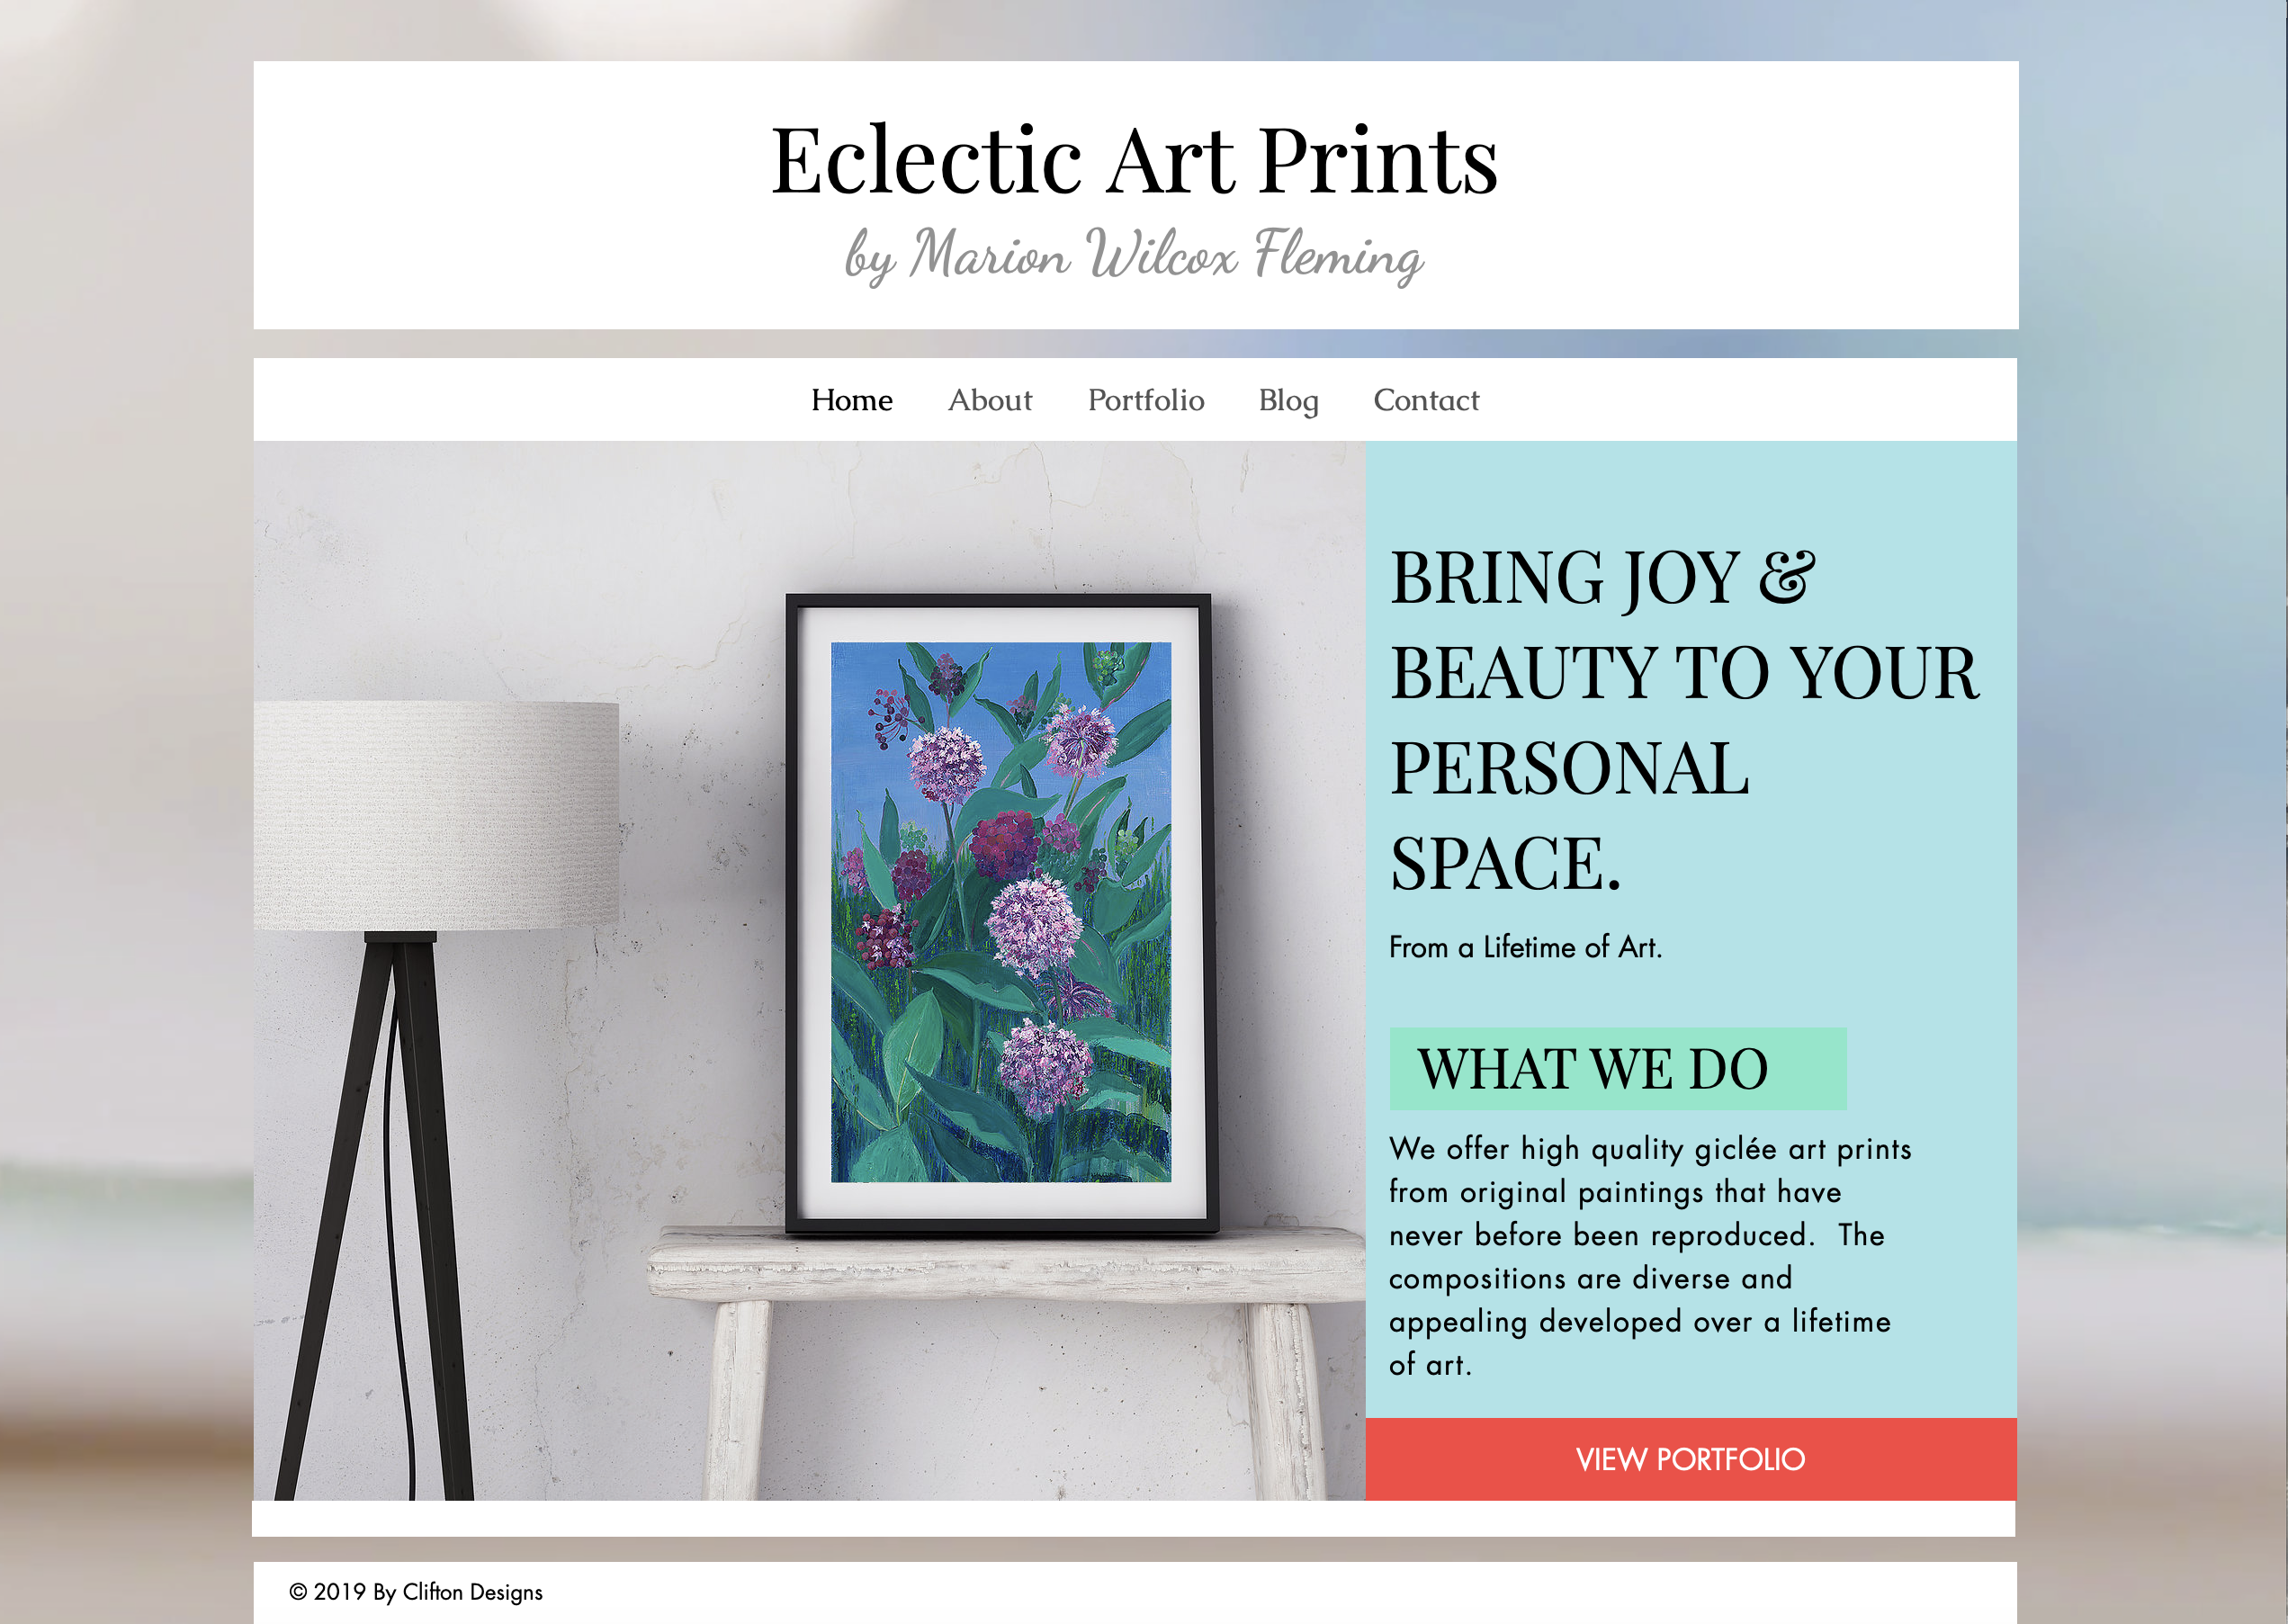 Eclectic Art Prints